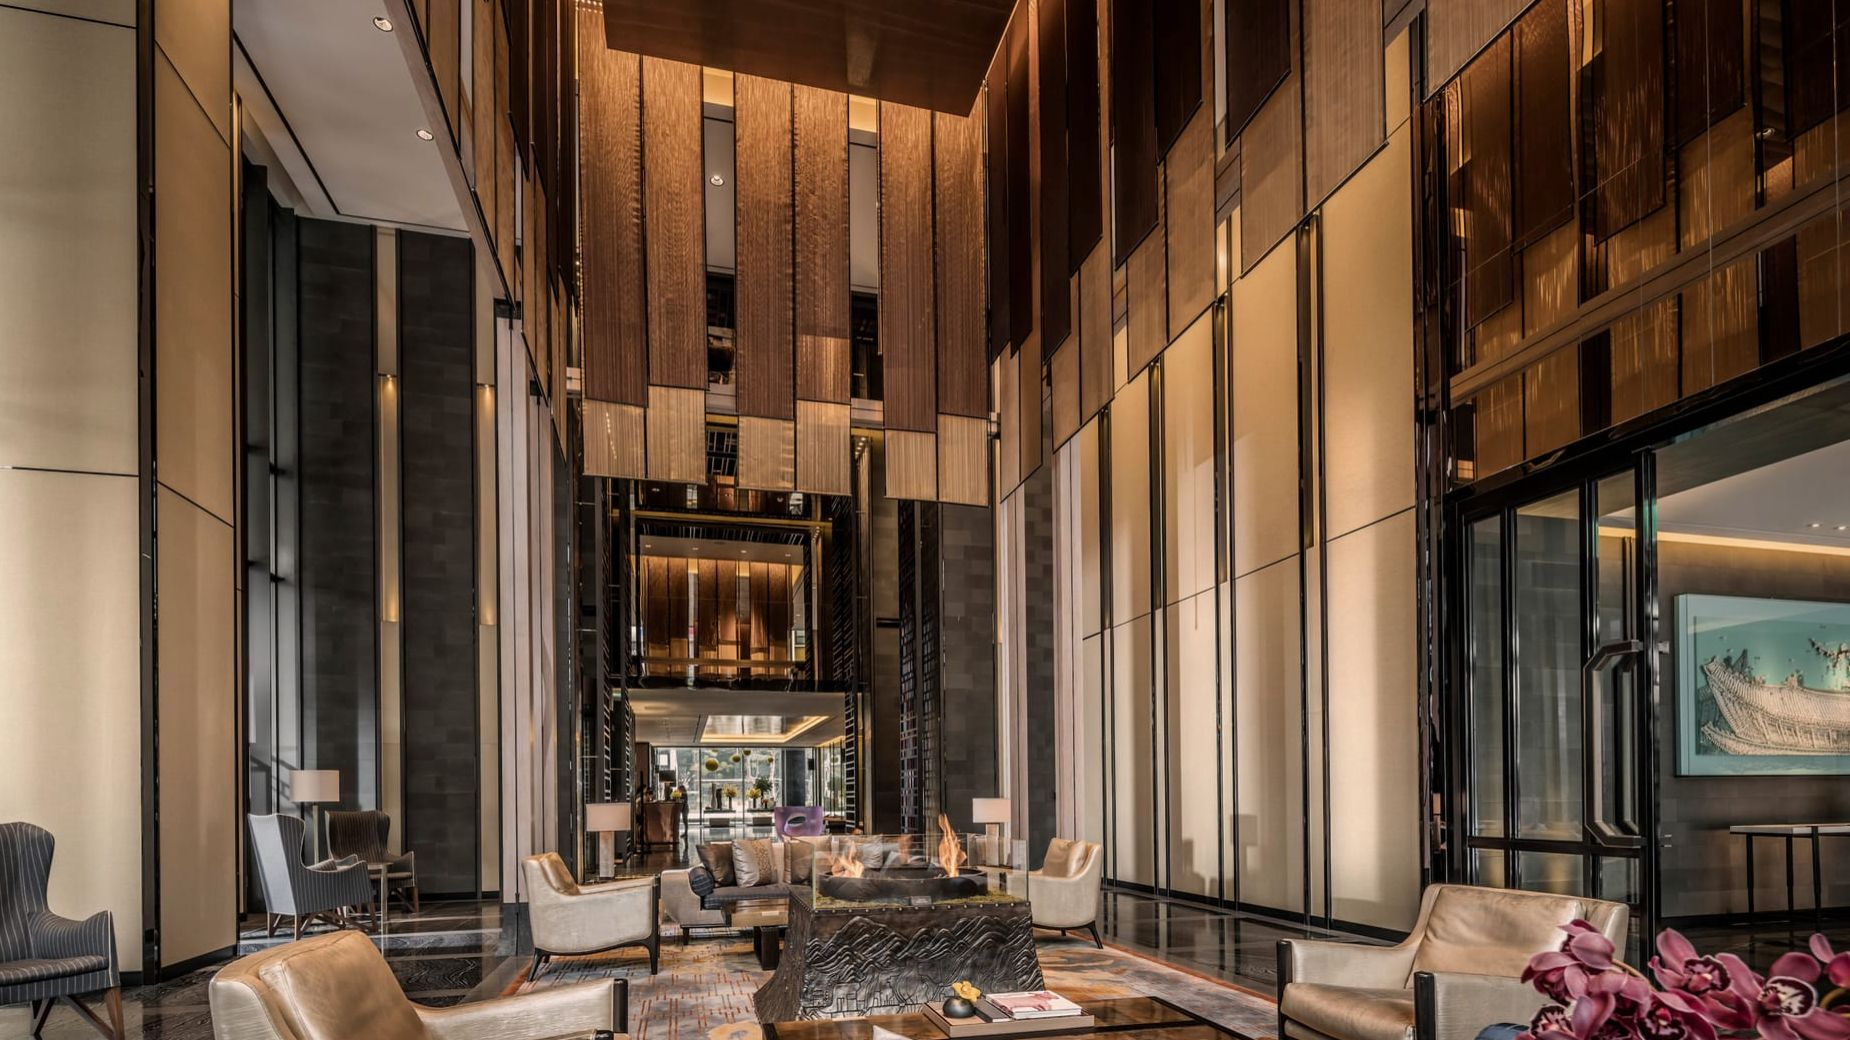 Where to stay in Seoul for the most smashing decor